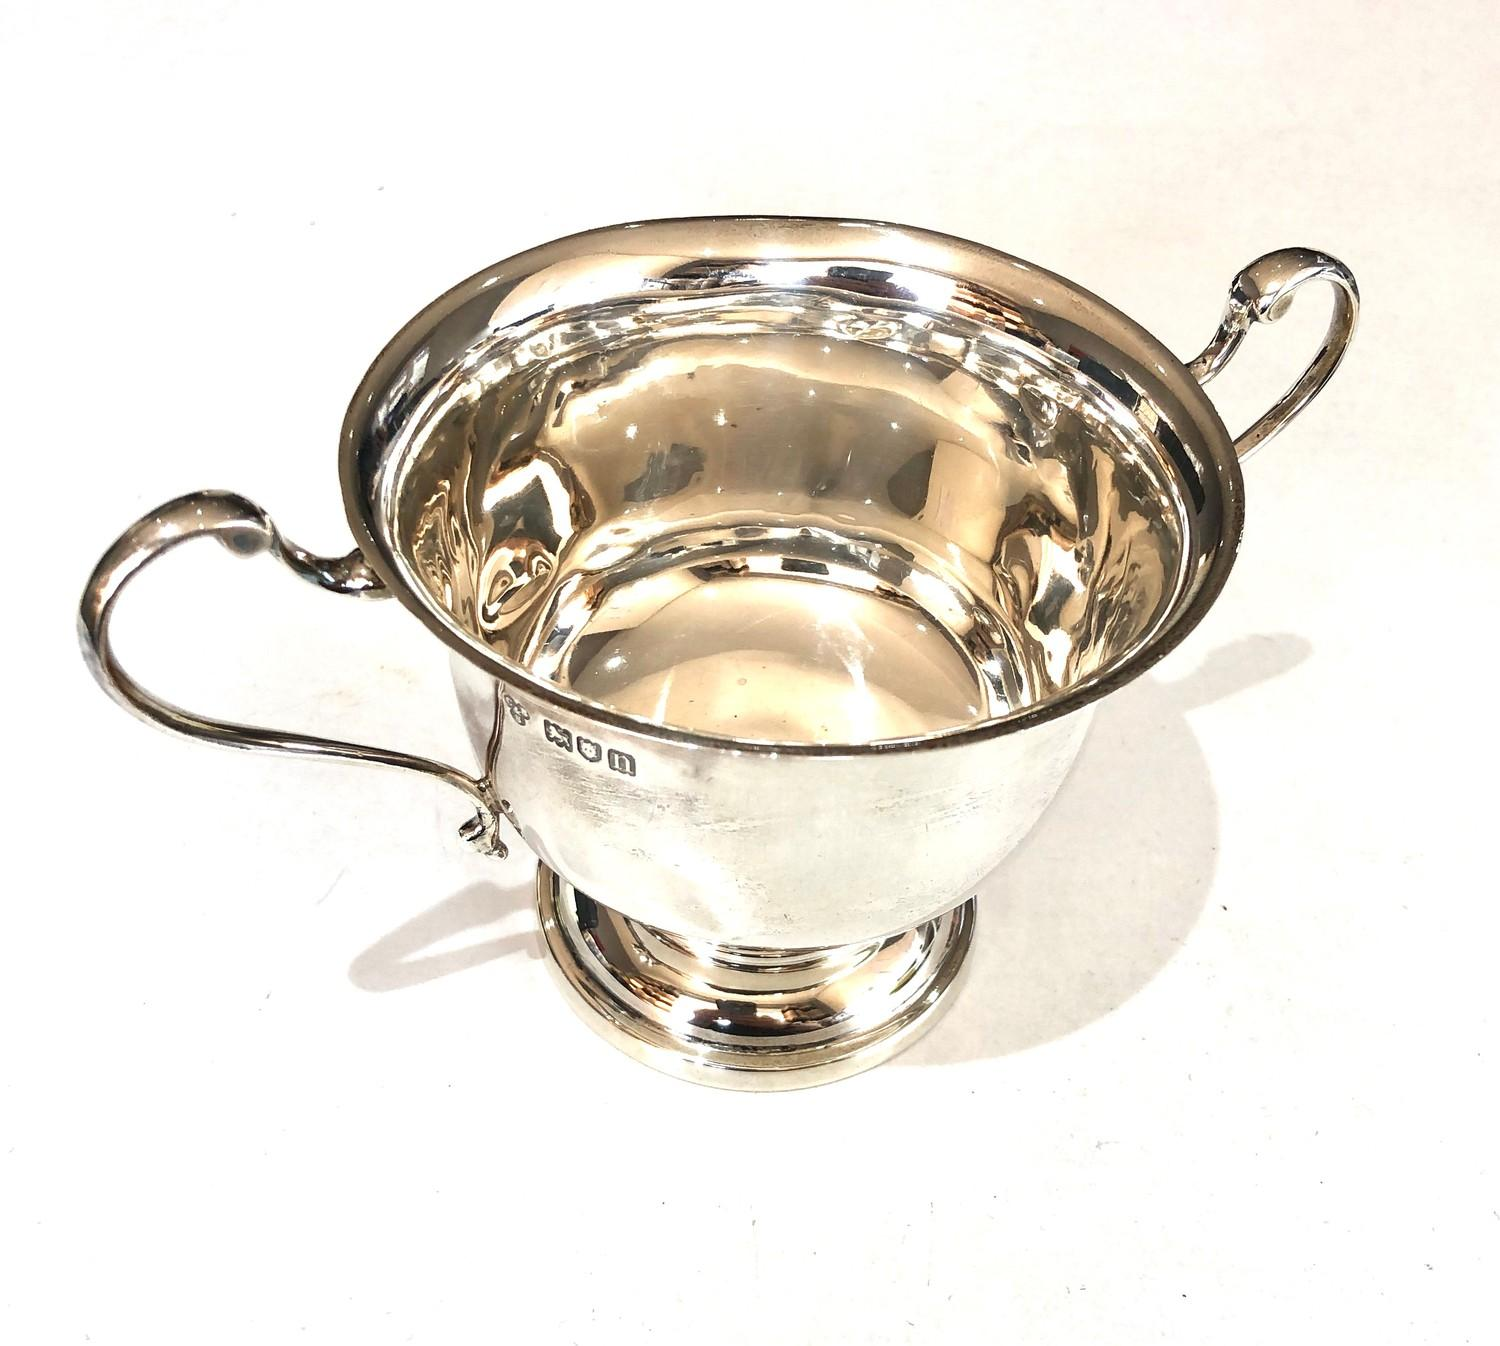 Antique silver 2 handled bowl measures approx 17cm from handles dia 10.5cm height 9cm London - Image 2 of 3